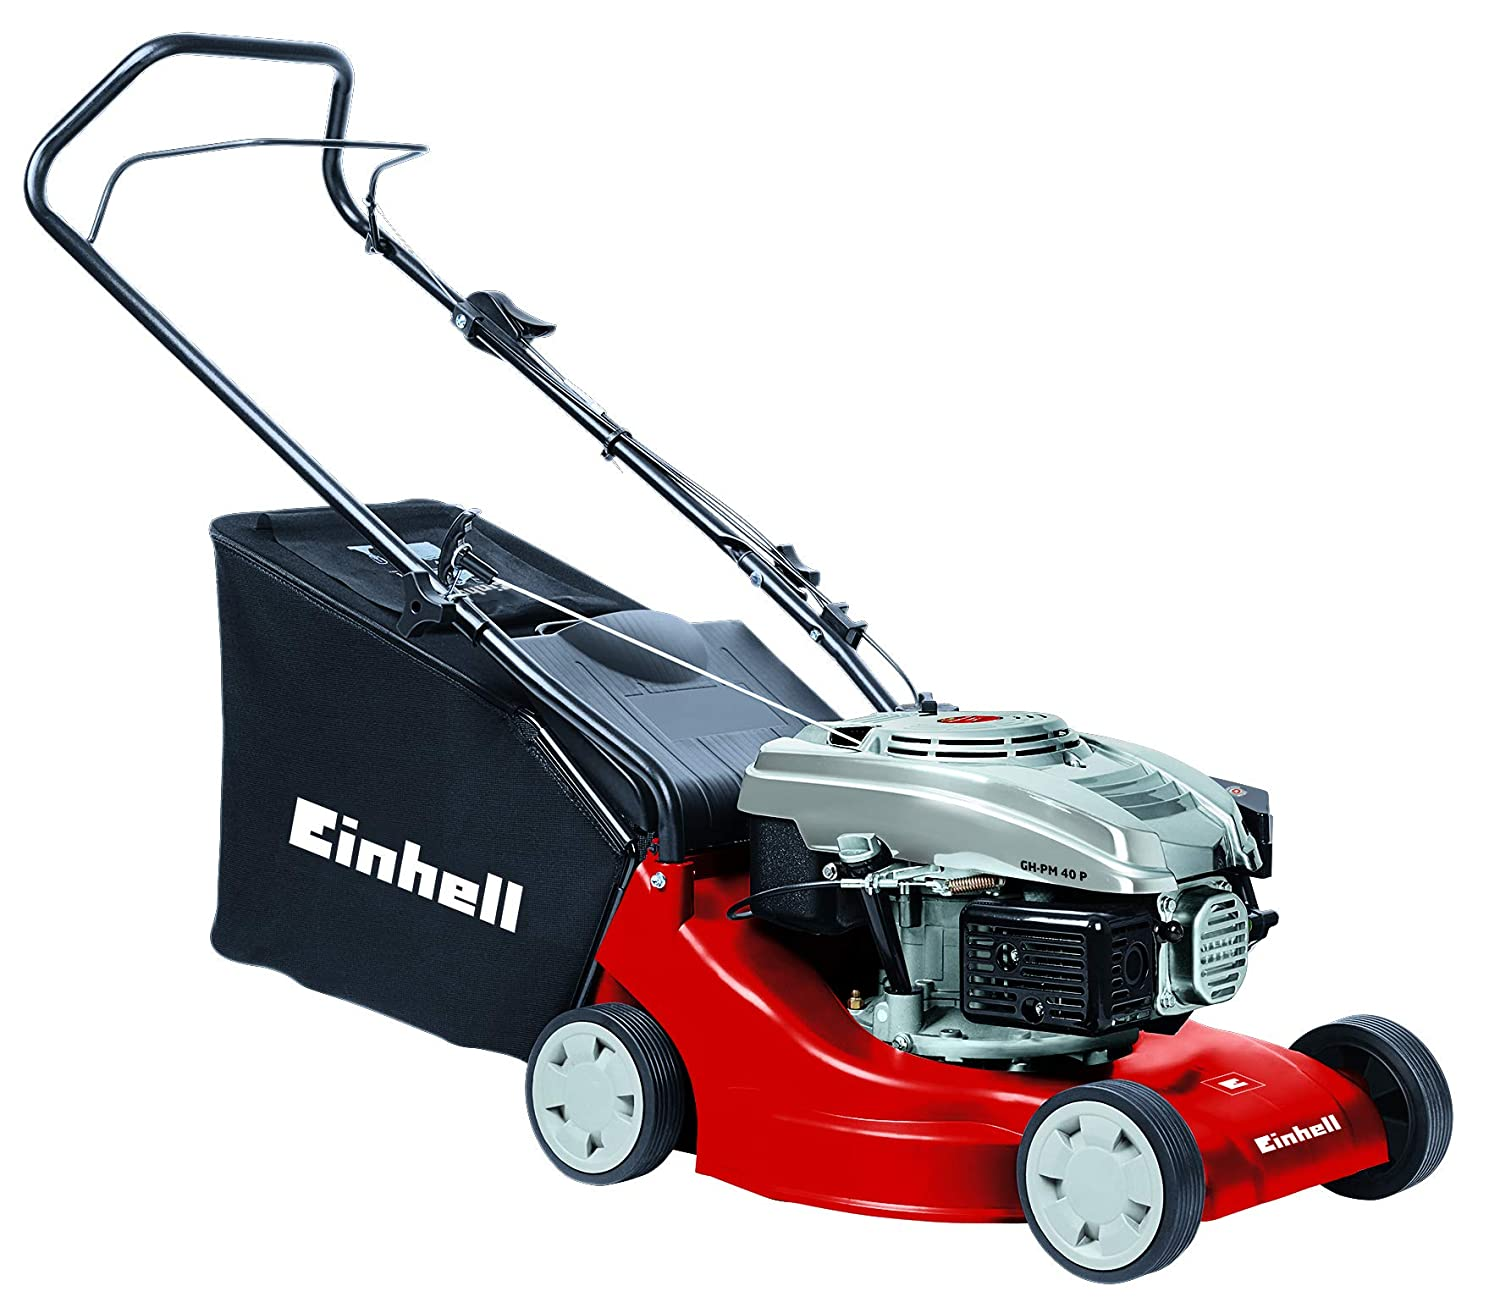 Einhell GH-PM 40 P Push Petrol Lawnmower with 40 cm Cutting Width - Red 3401013